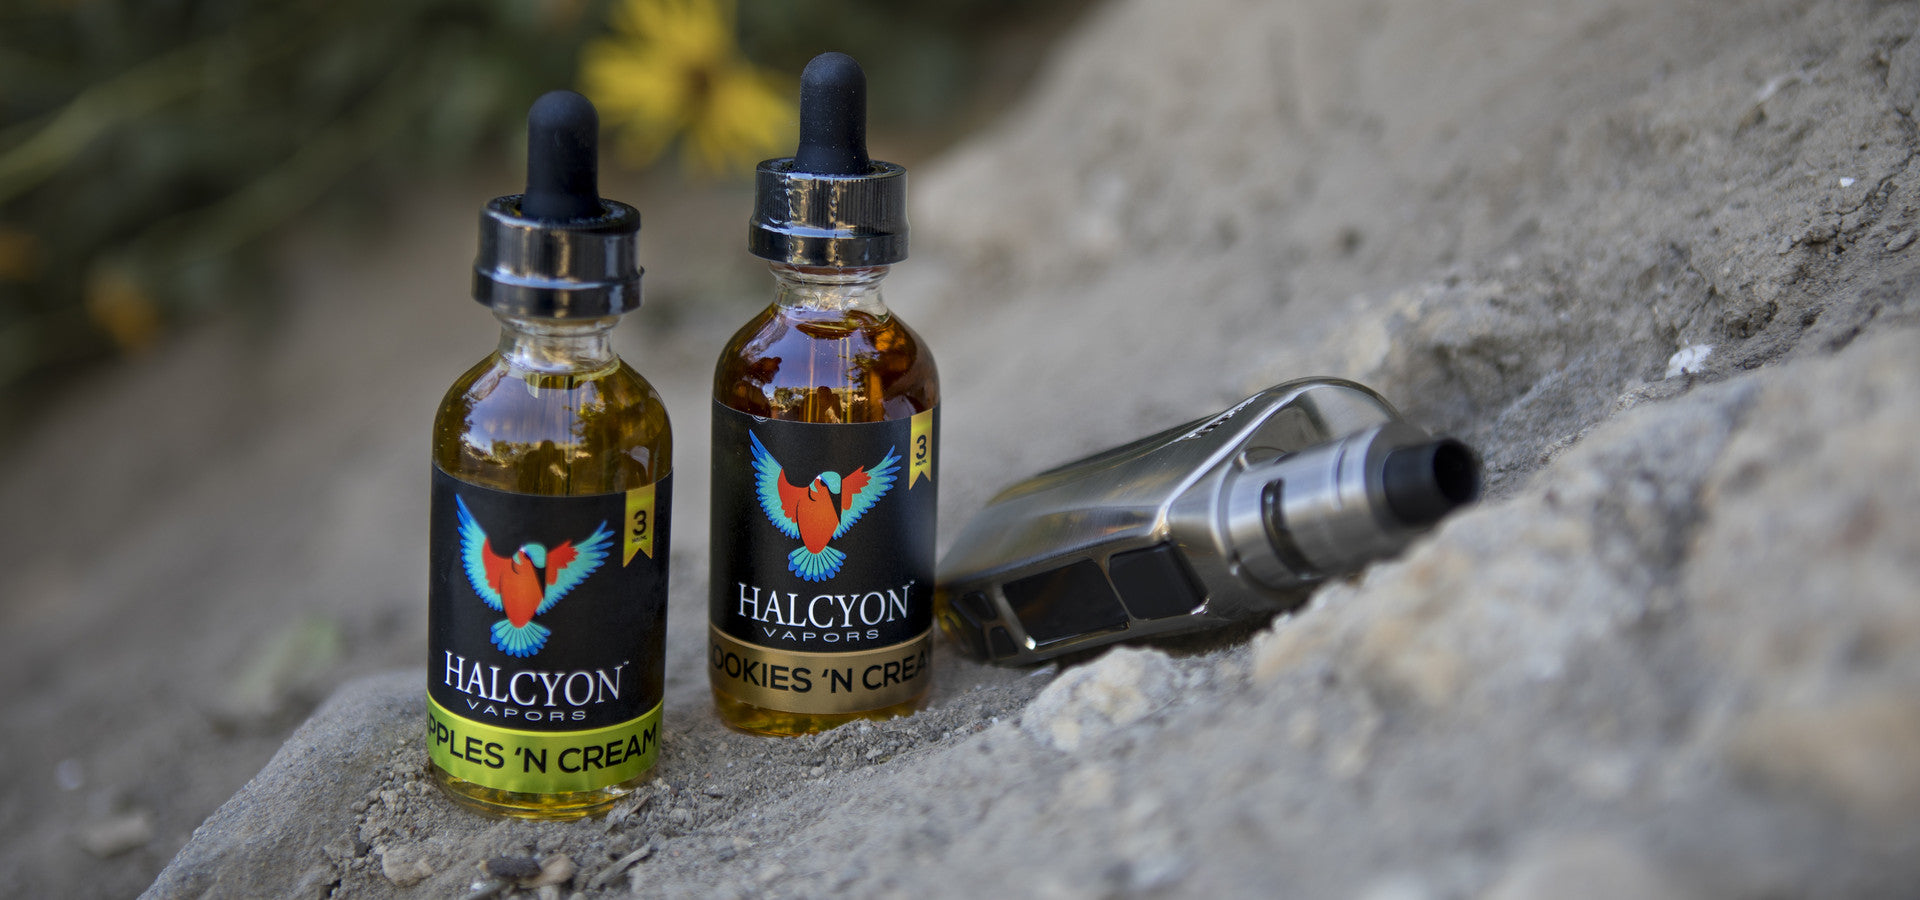 New Halcyon Flavors